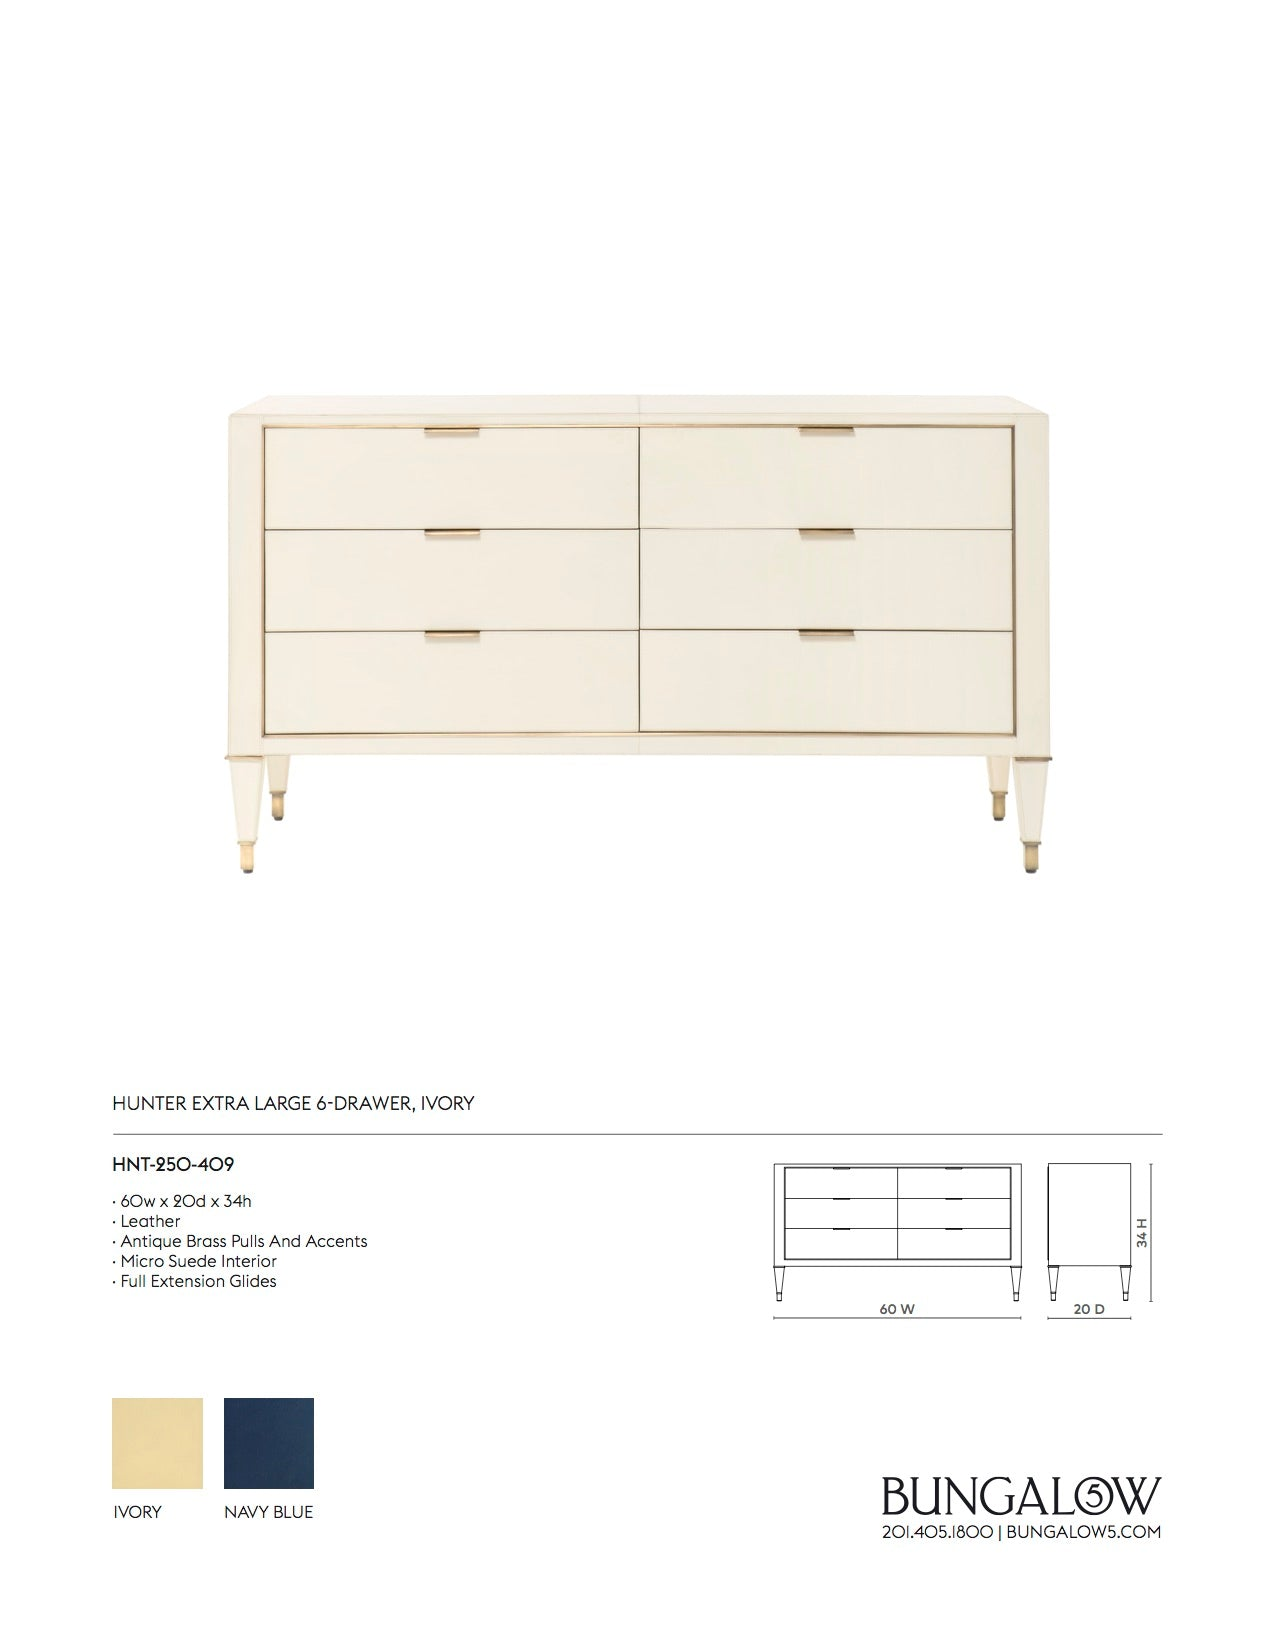 Bungalow 5 Hunter Extra Large 6 Drawer Chest Ivory Tearsheet